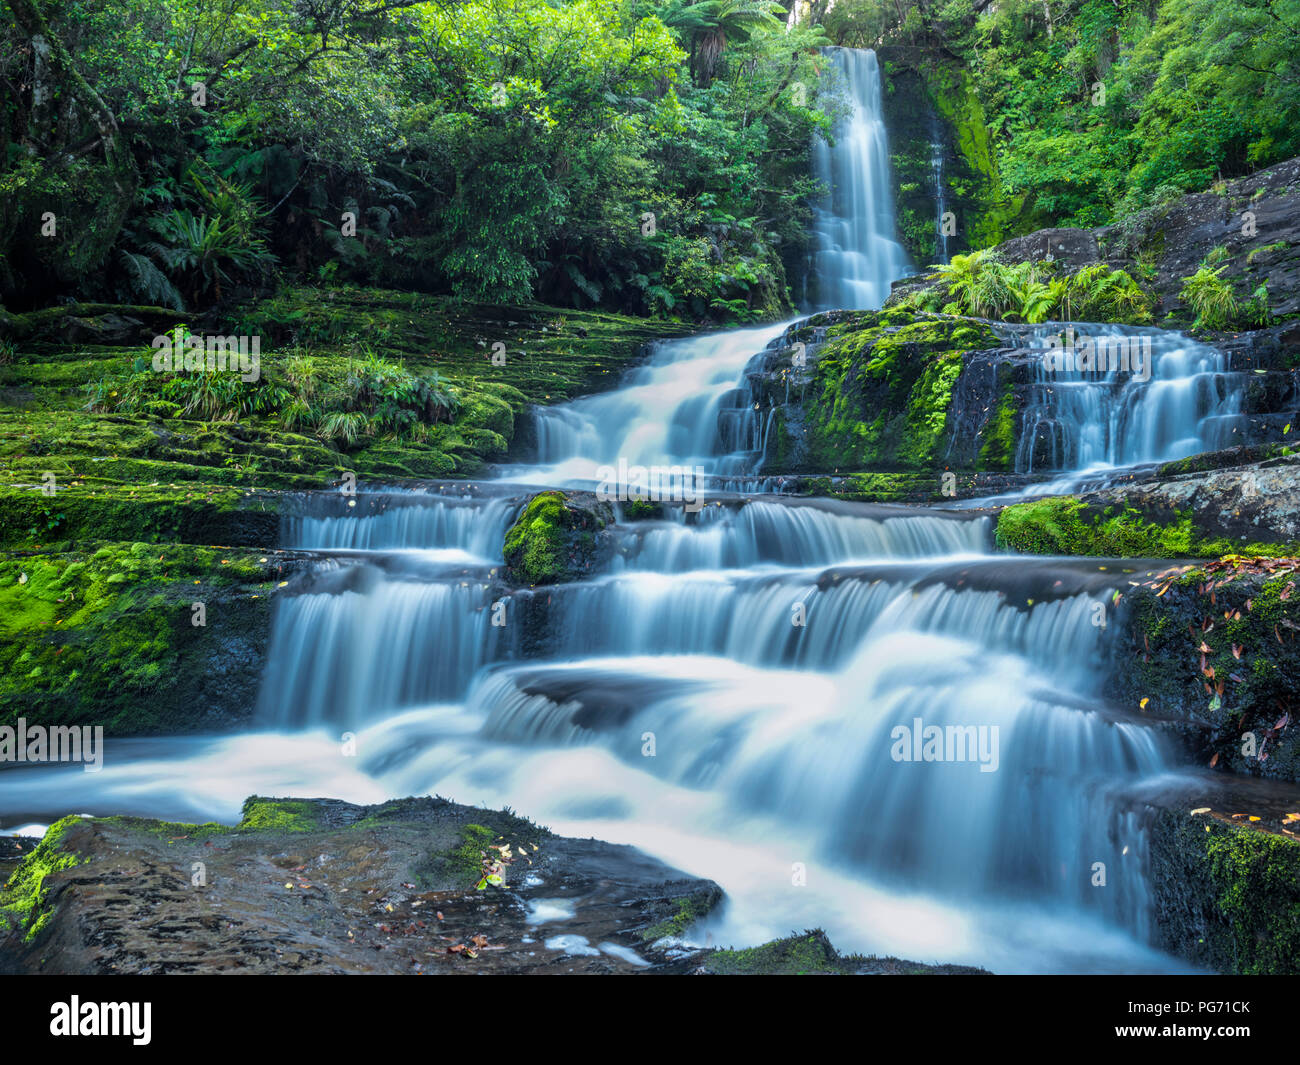 New Zealand, South Island, McLean Falls at Catlins Forest Park - Stock Image